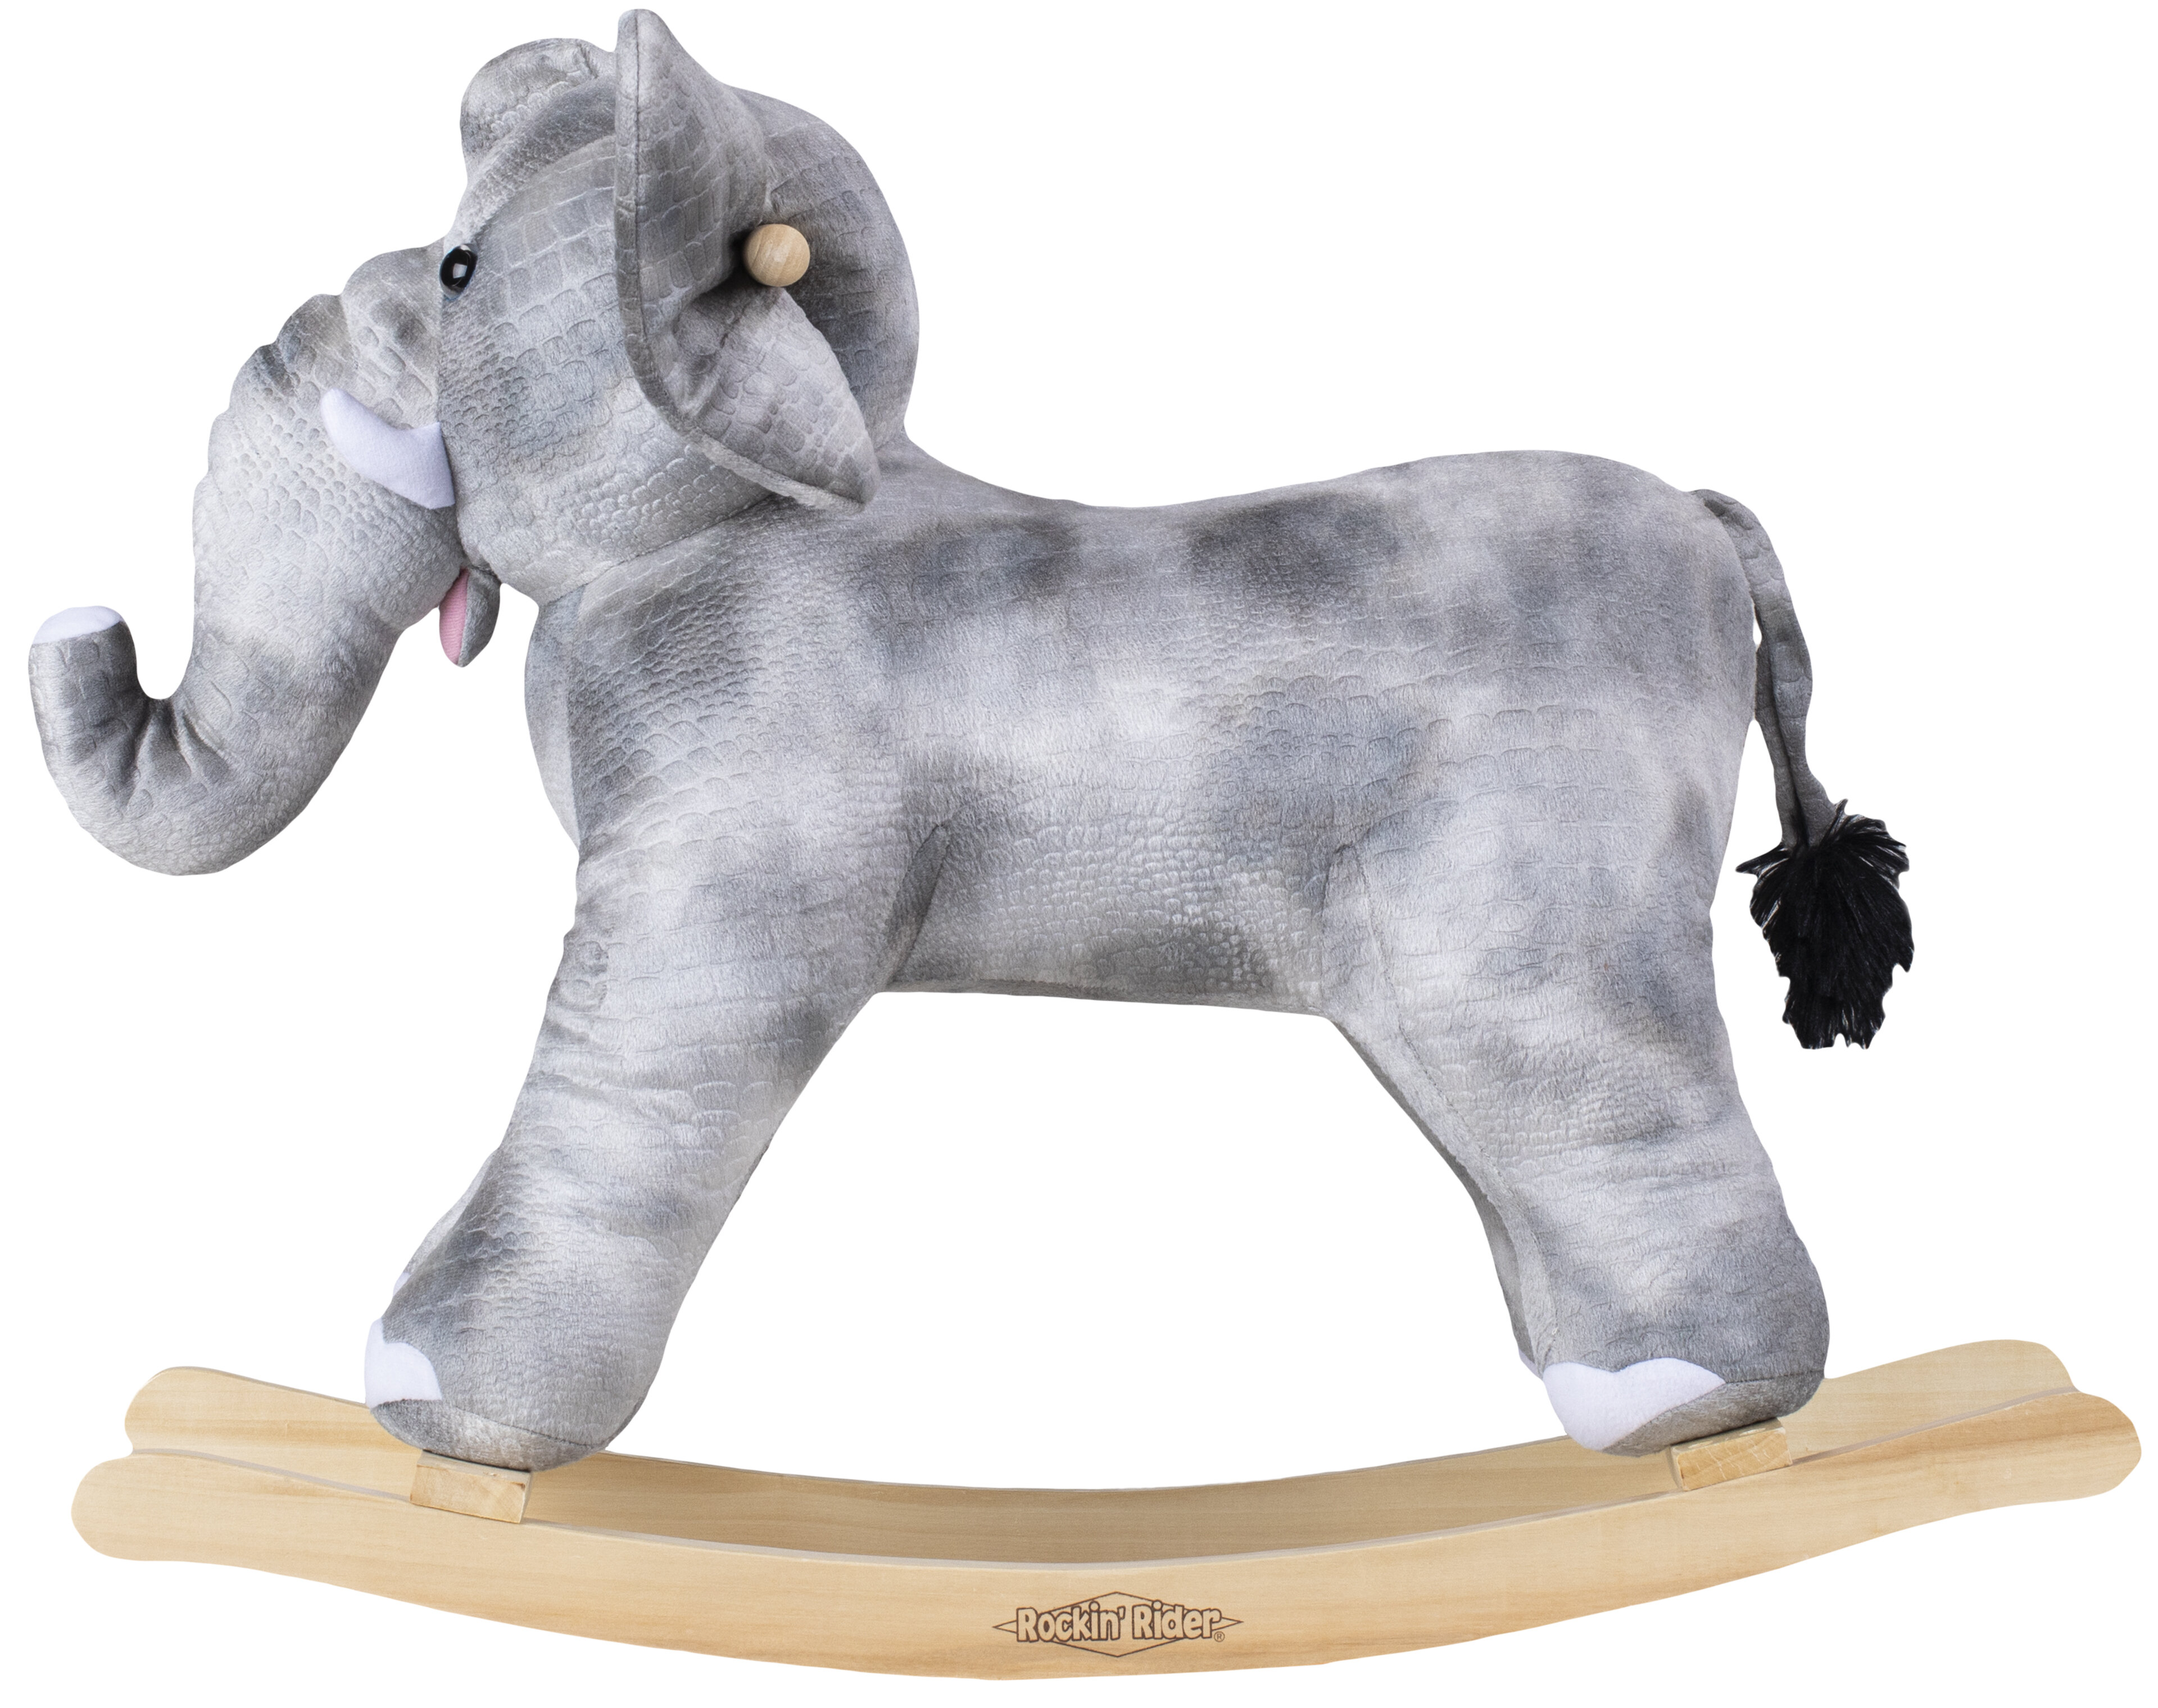 Rockin Rider Elliot The Elephant Rocker Reviews